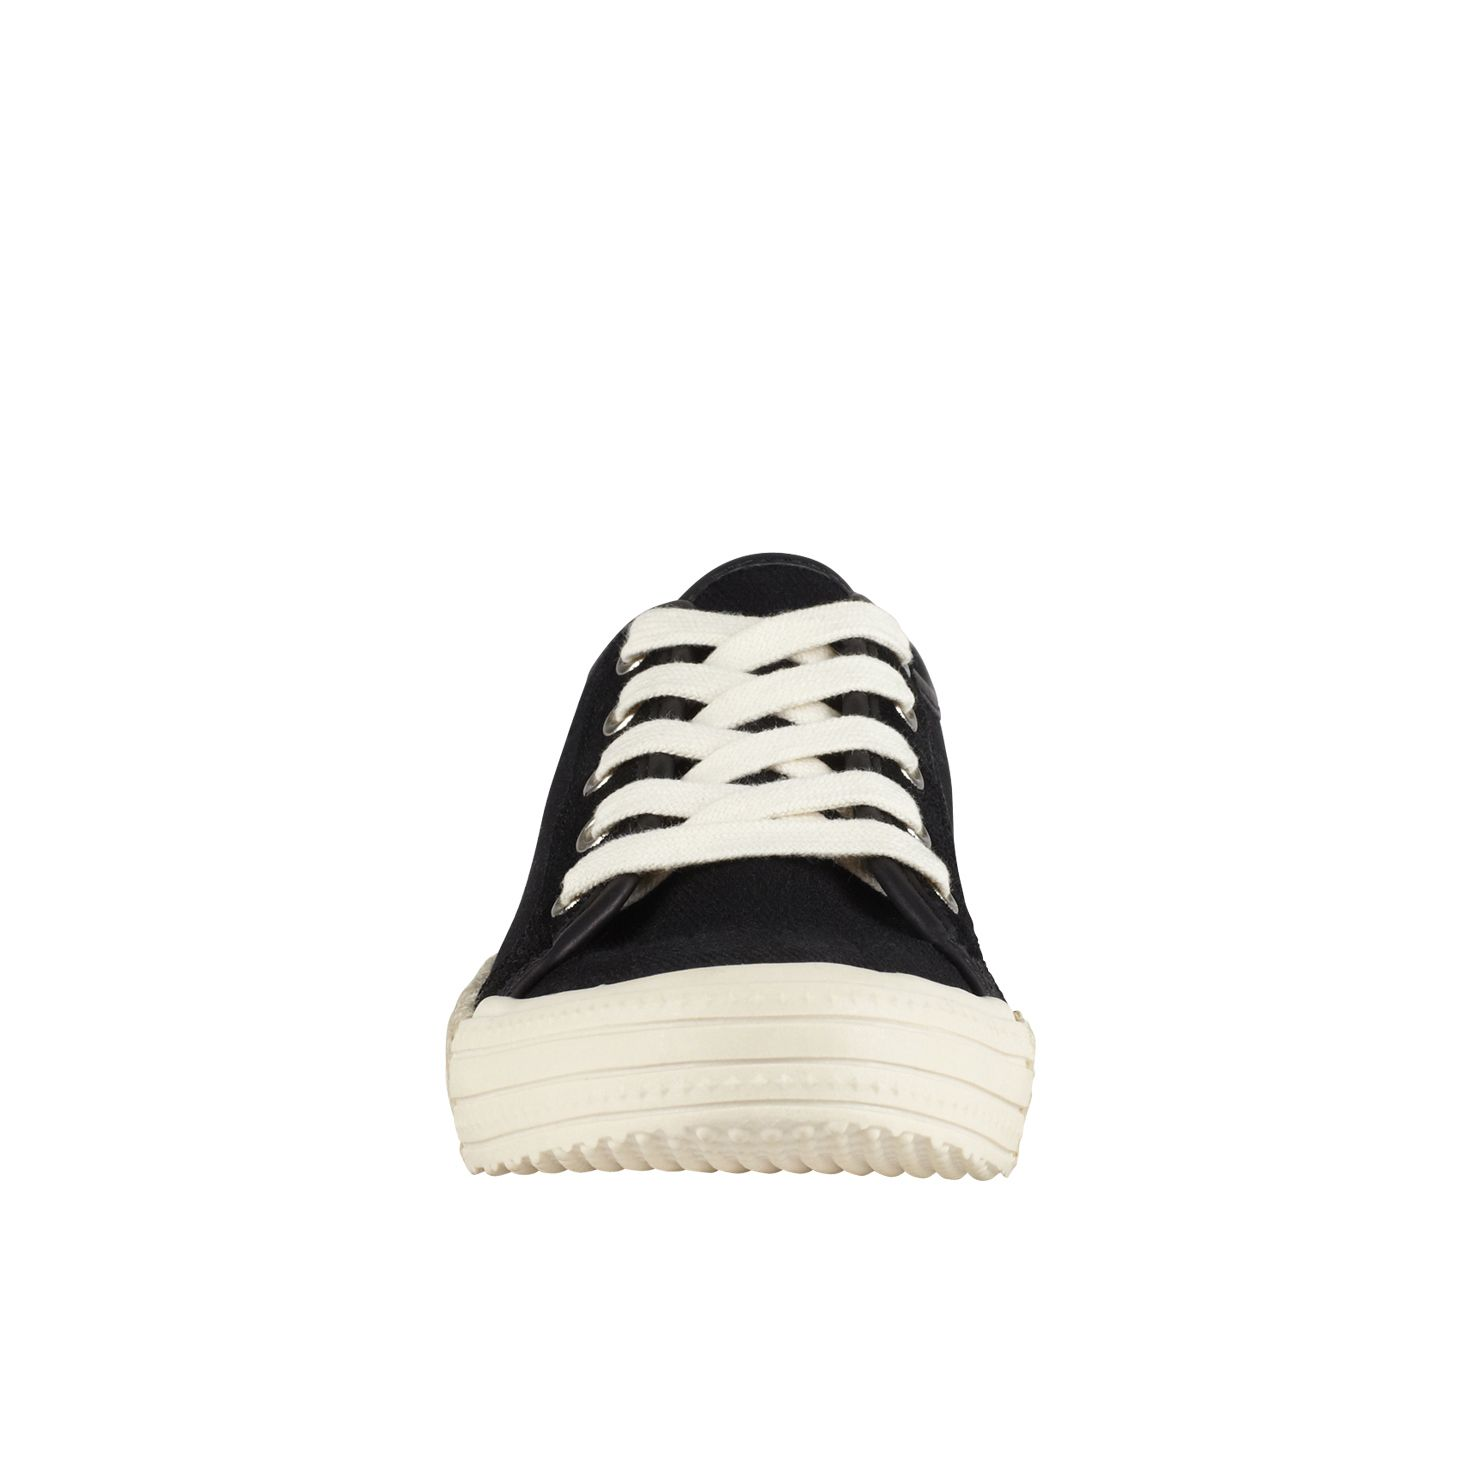 Craesa lace up trainer shoes